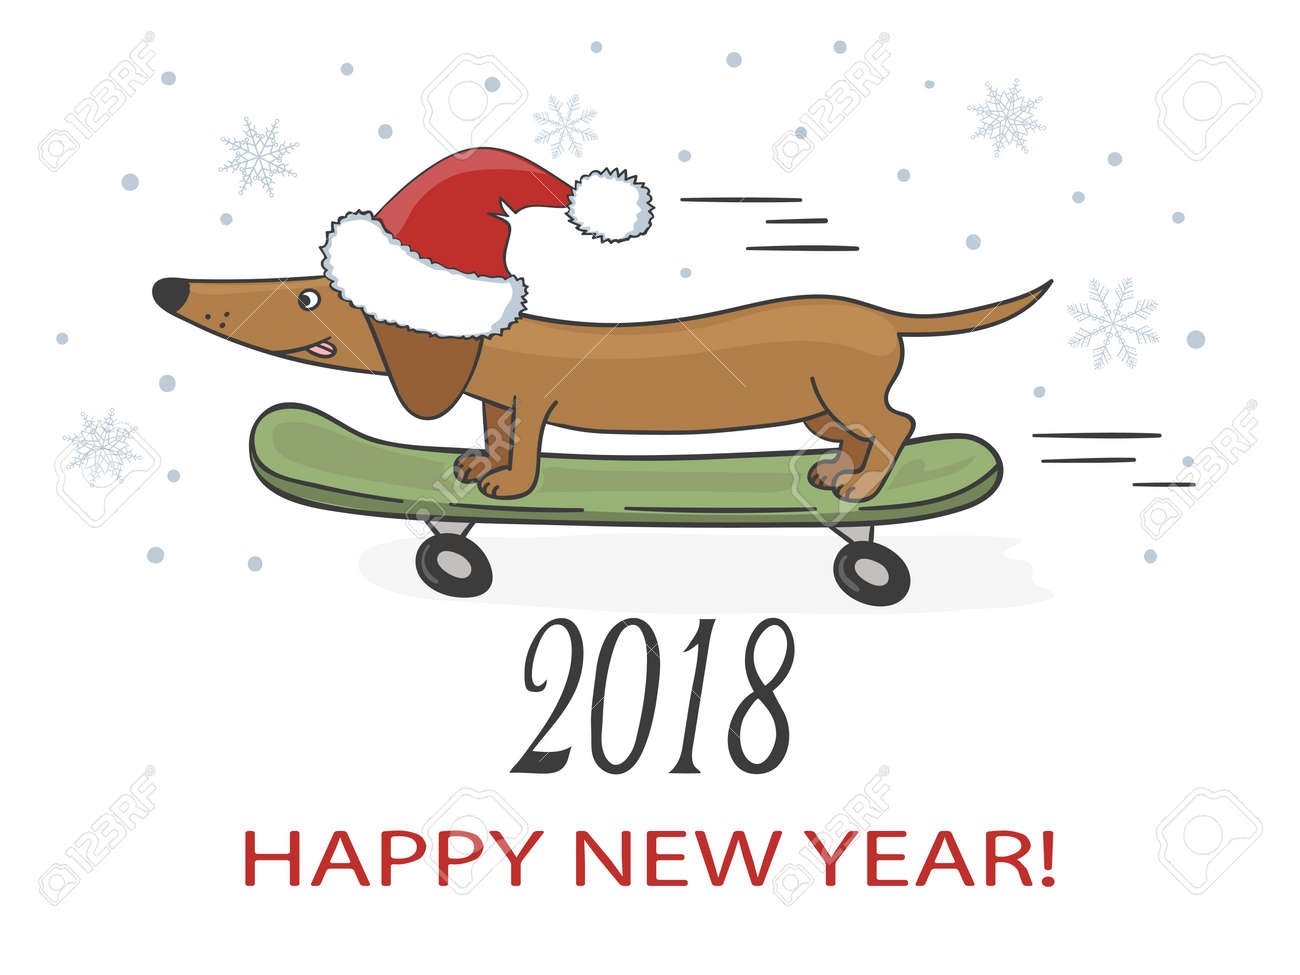 happy new year 2018 vector illustration with cute dachshund dog on skateboard stock vector